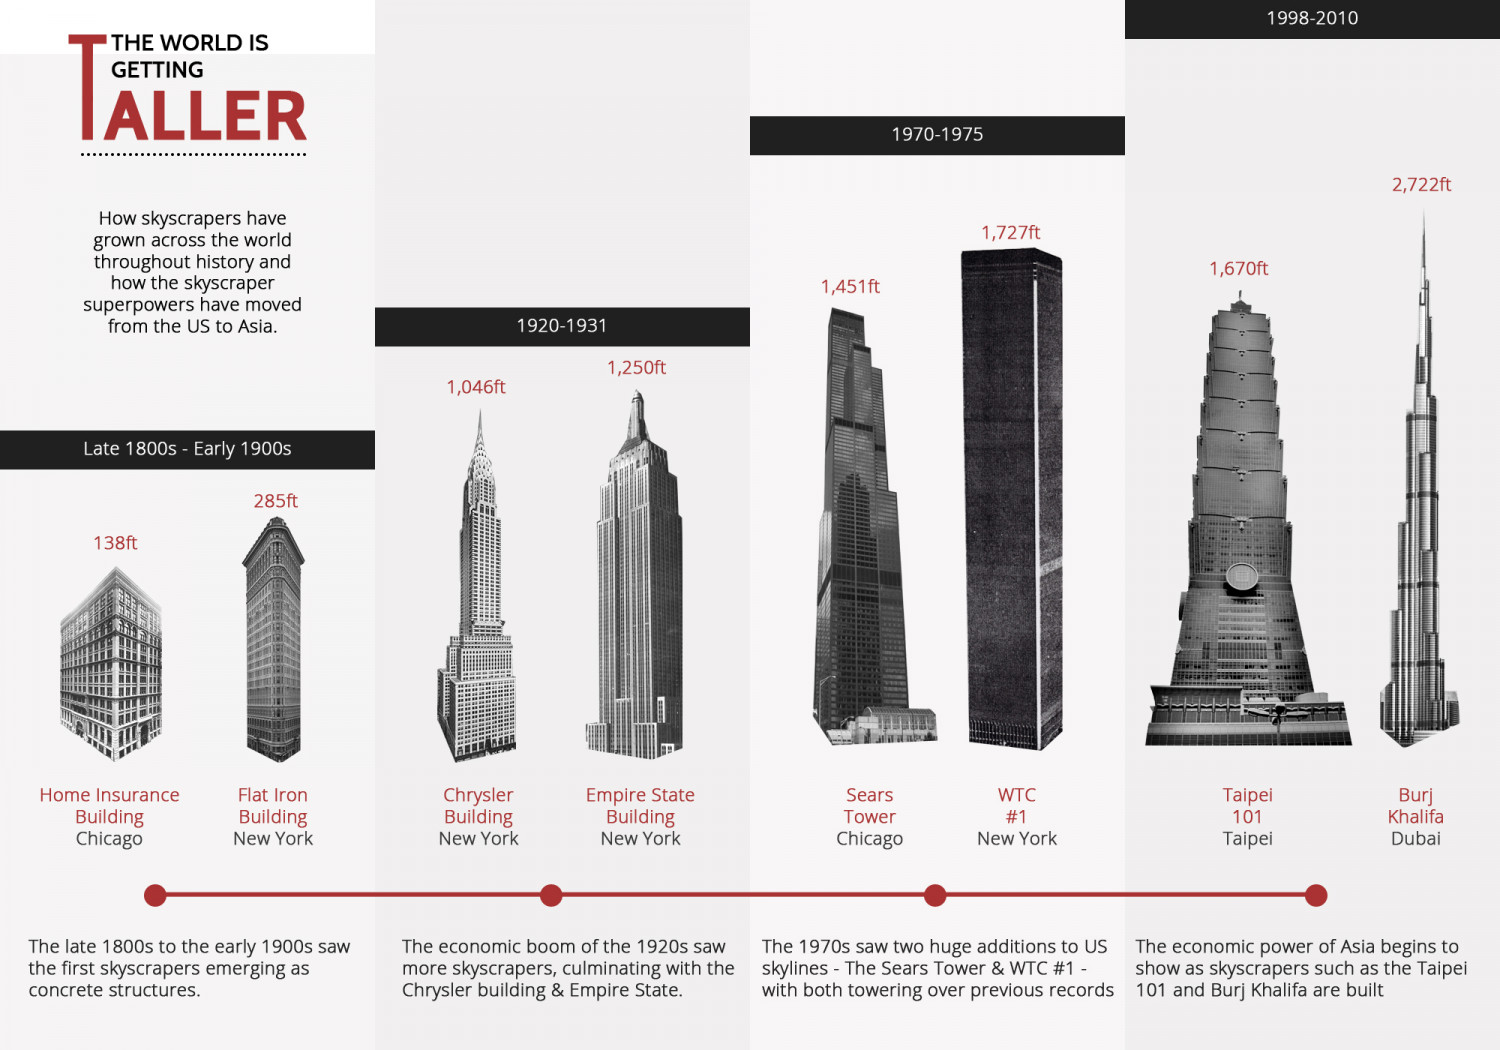 Skyscrapers Through History: The World Is Getting Taller Infographic